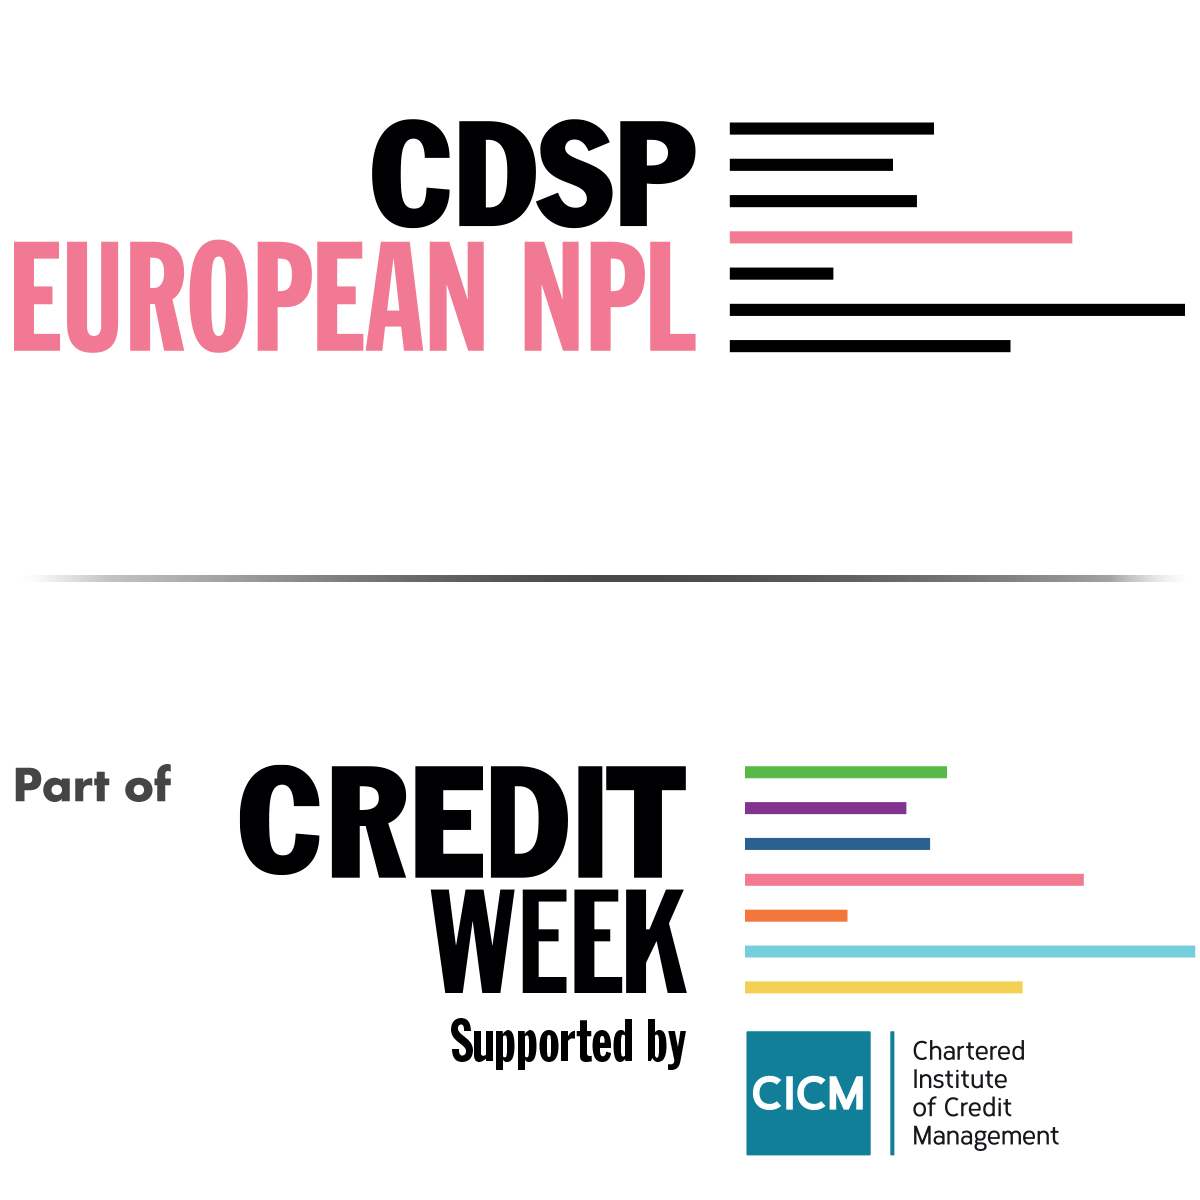 tranparent CDSP EU NPL logo part of CW17.png